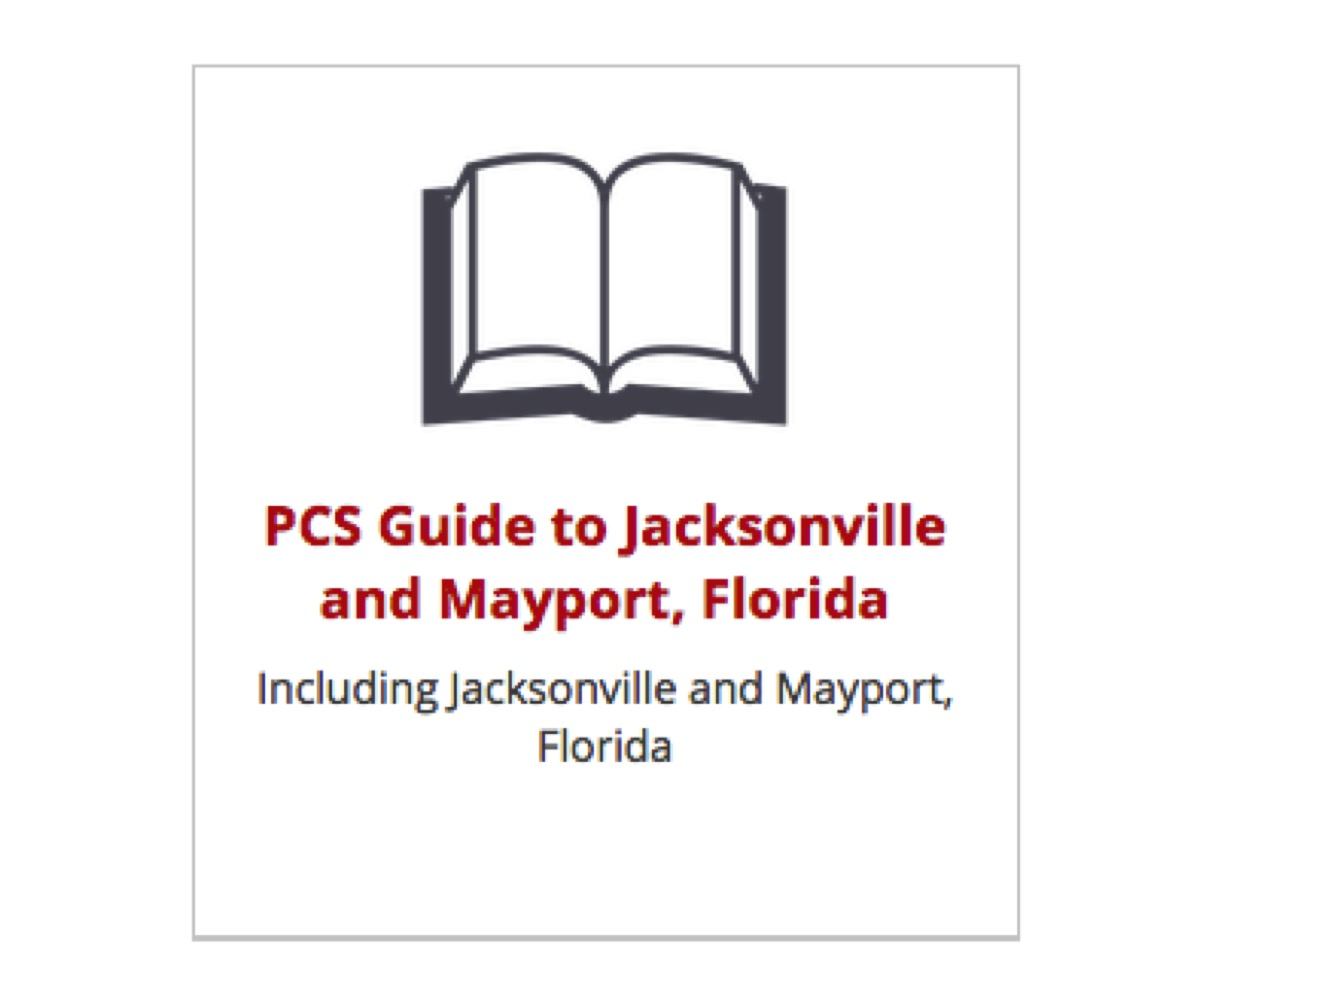 PCS Guide to Jacksonville